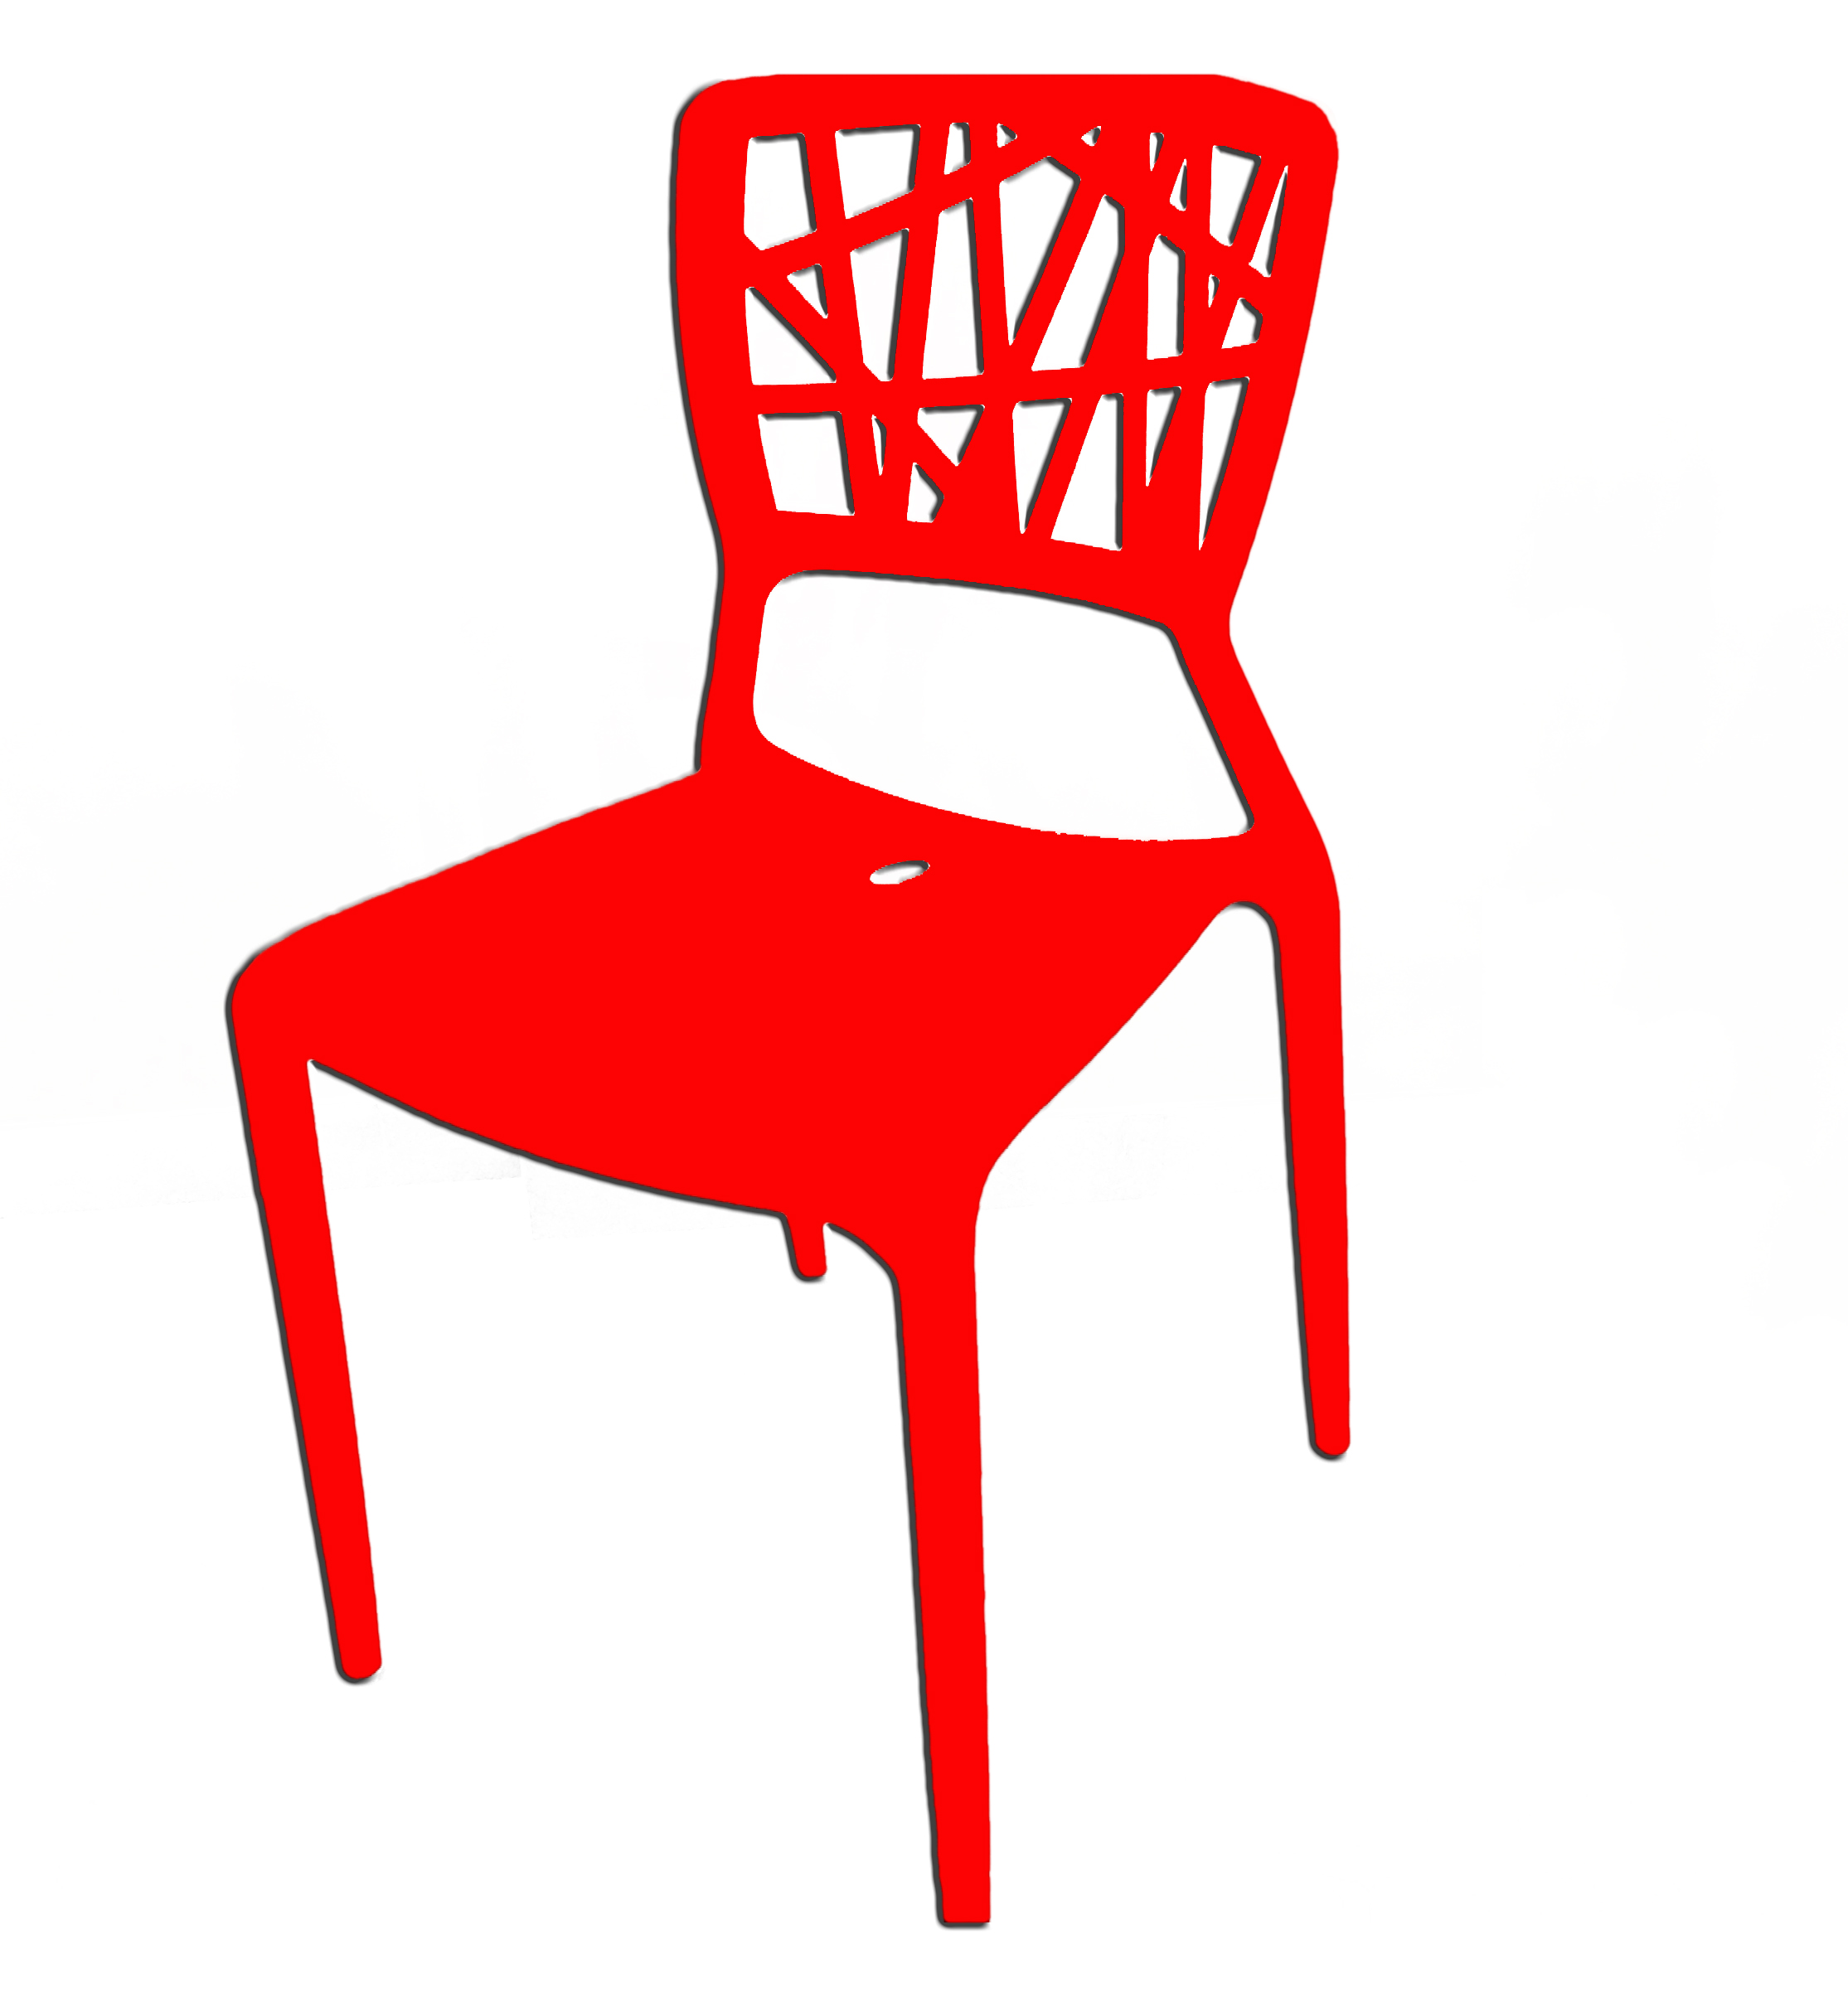 Cafeteria Chairs Cp Ace Red Cc Office Chairs Online Office Chairs Price Buy